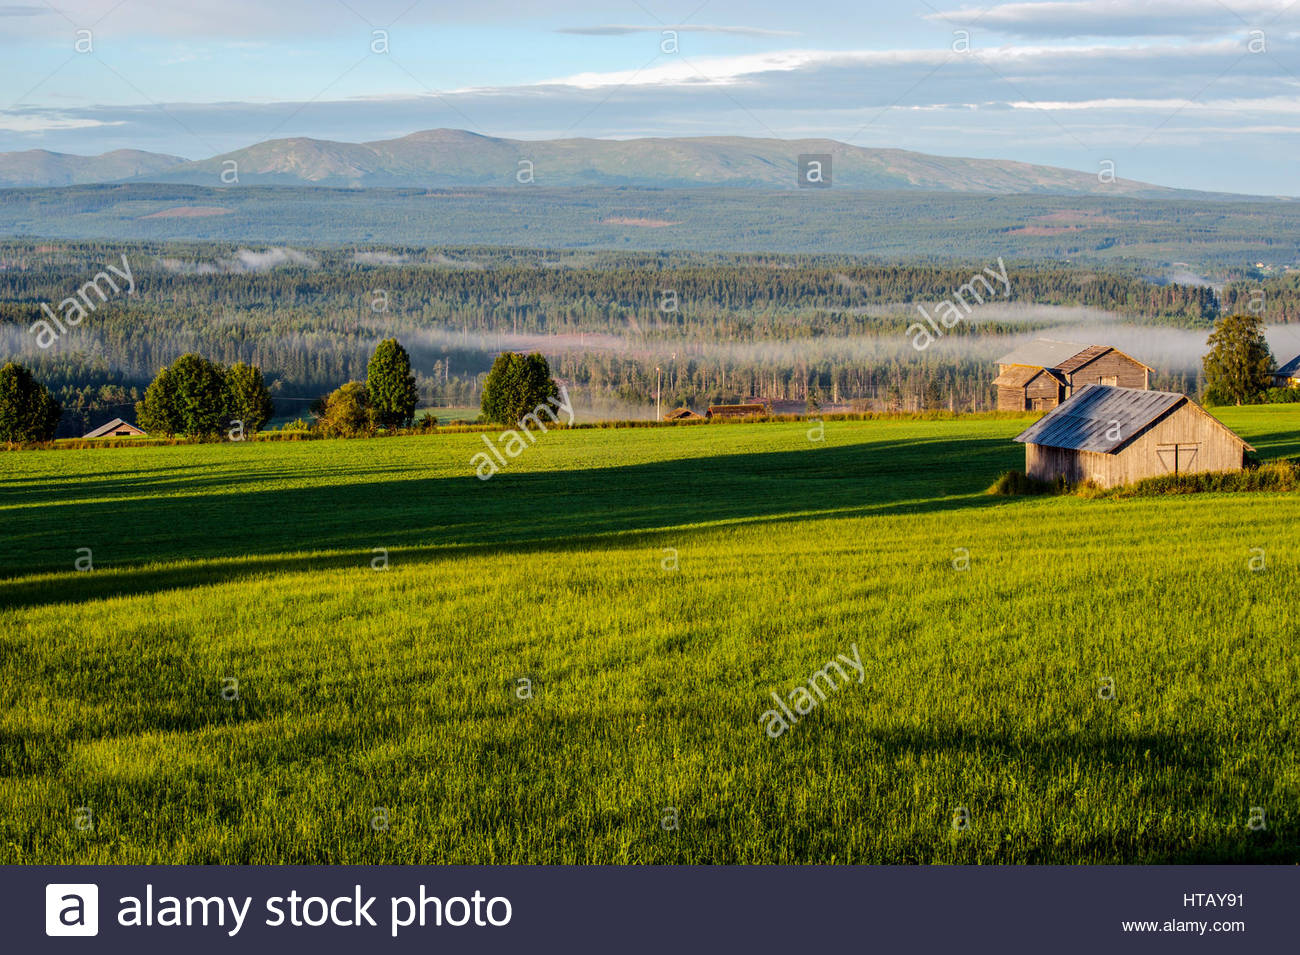 The mist lies like beautiful veils over the fields beneath the mountains. - Stock Image